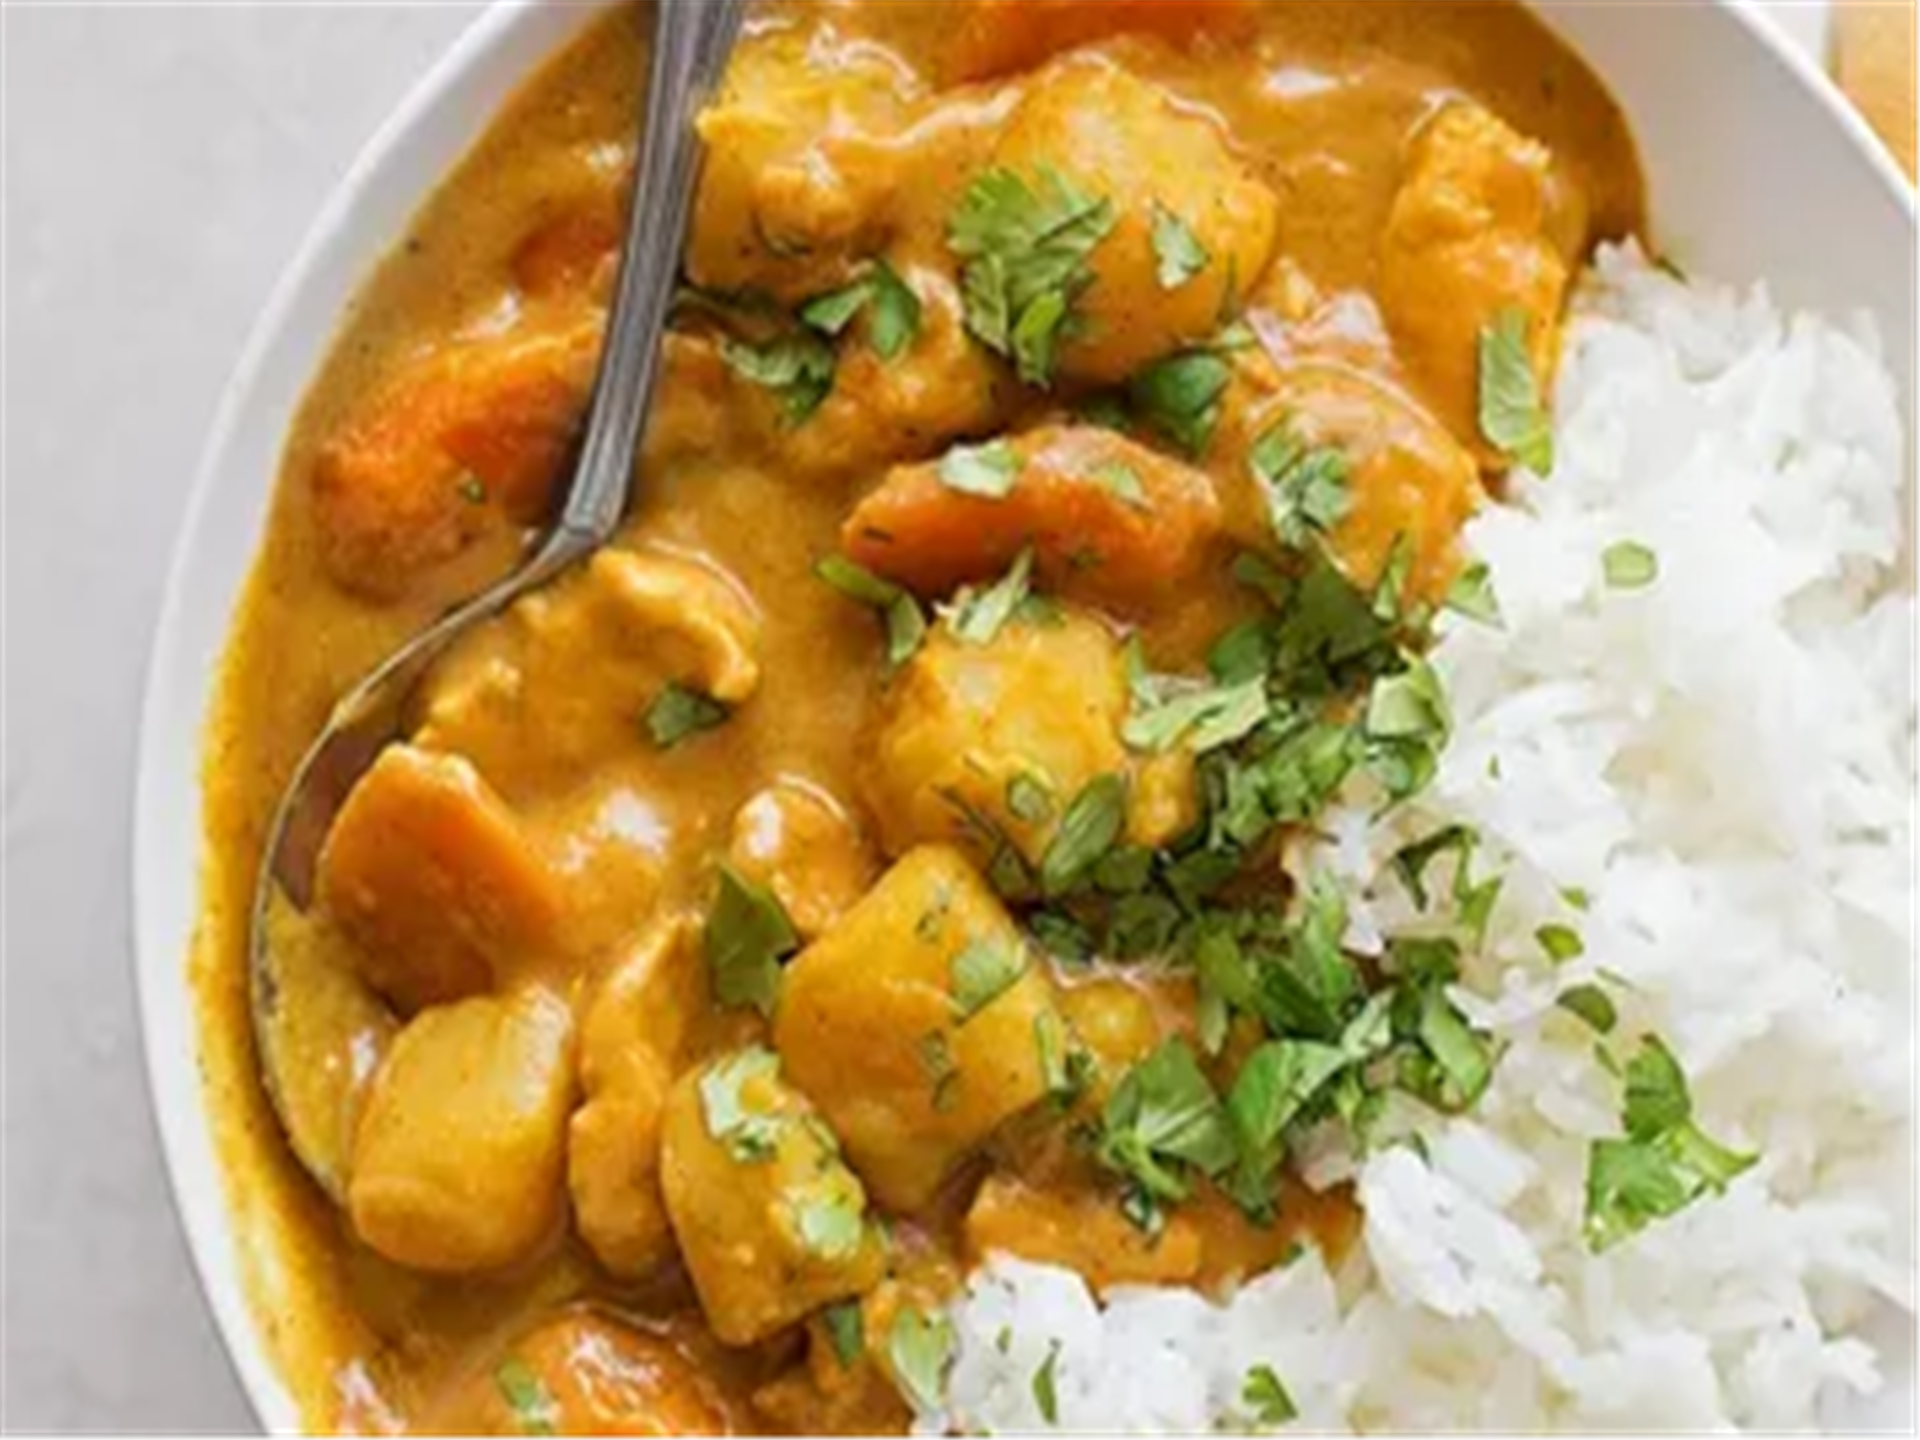 curry chicken: west indian style curry chicken served with white rice and vegetables